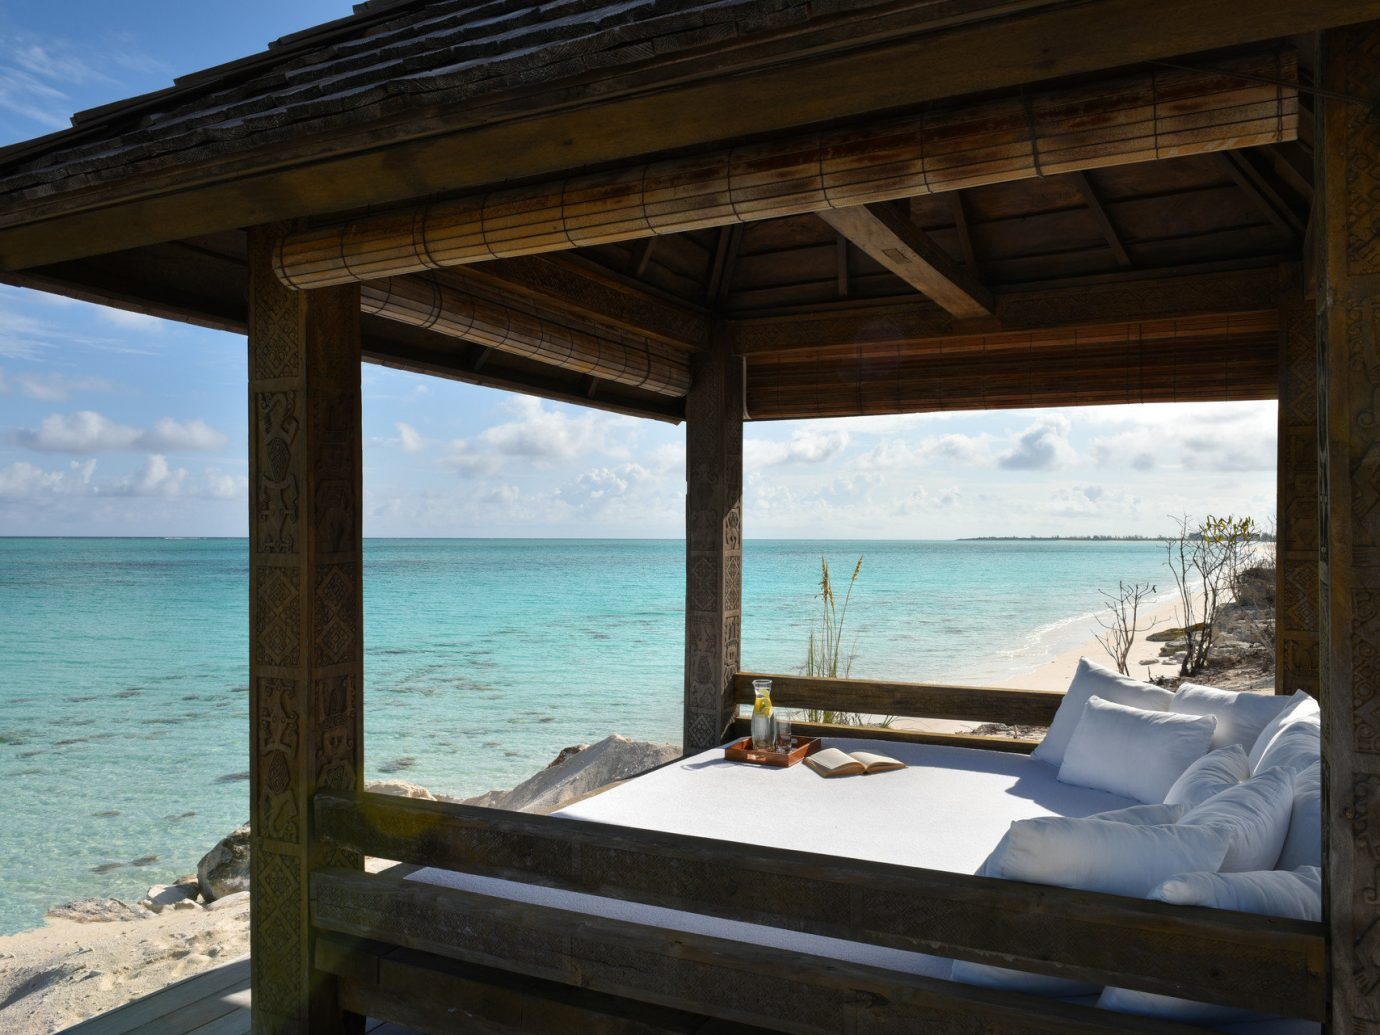 Beach front seating at COMO Parrot Cay, Turks and Caicos